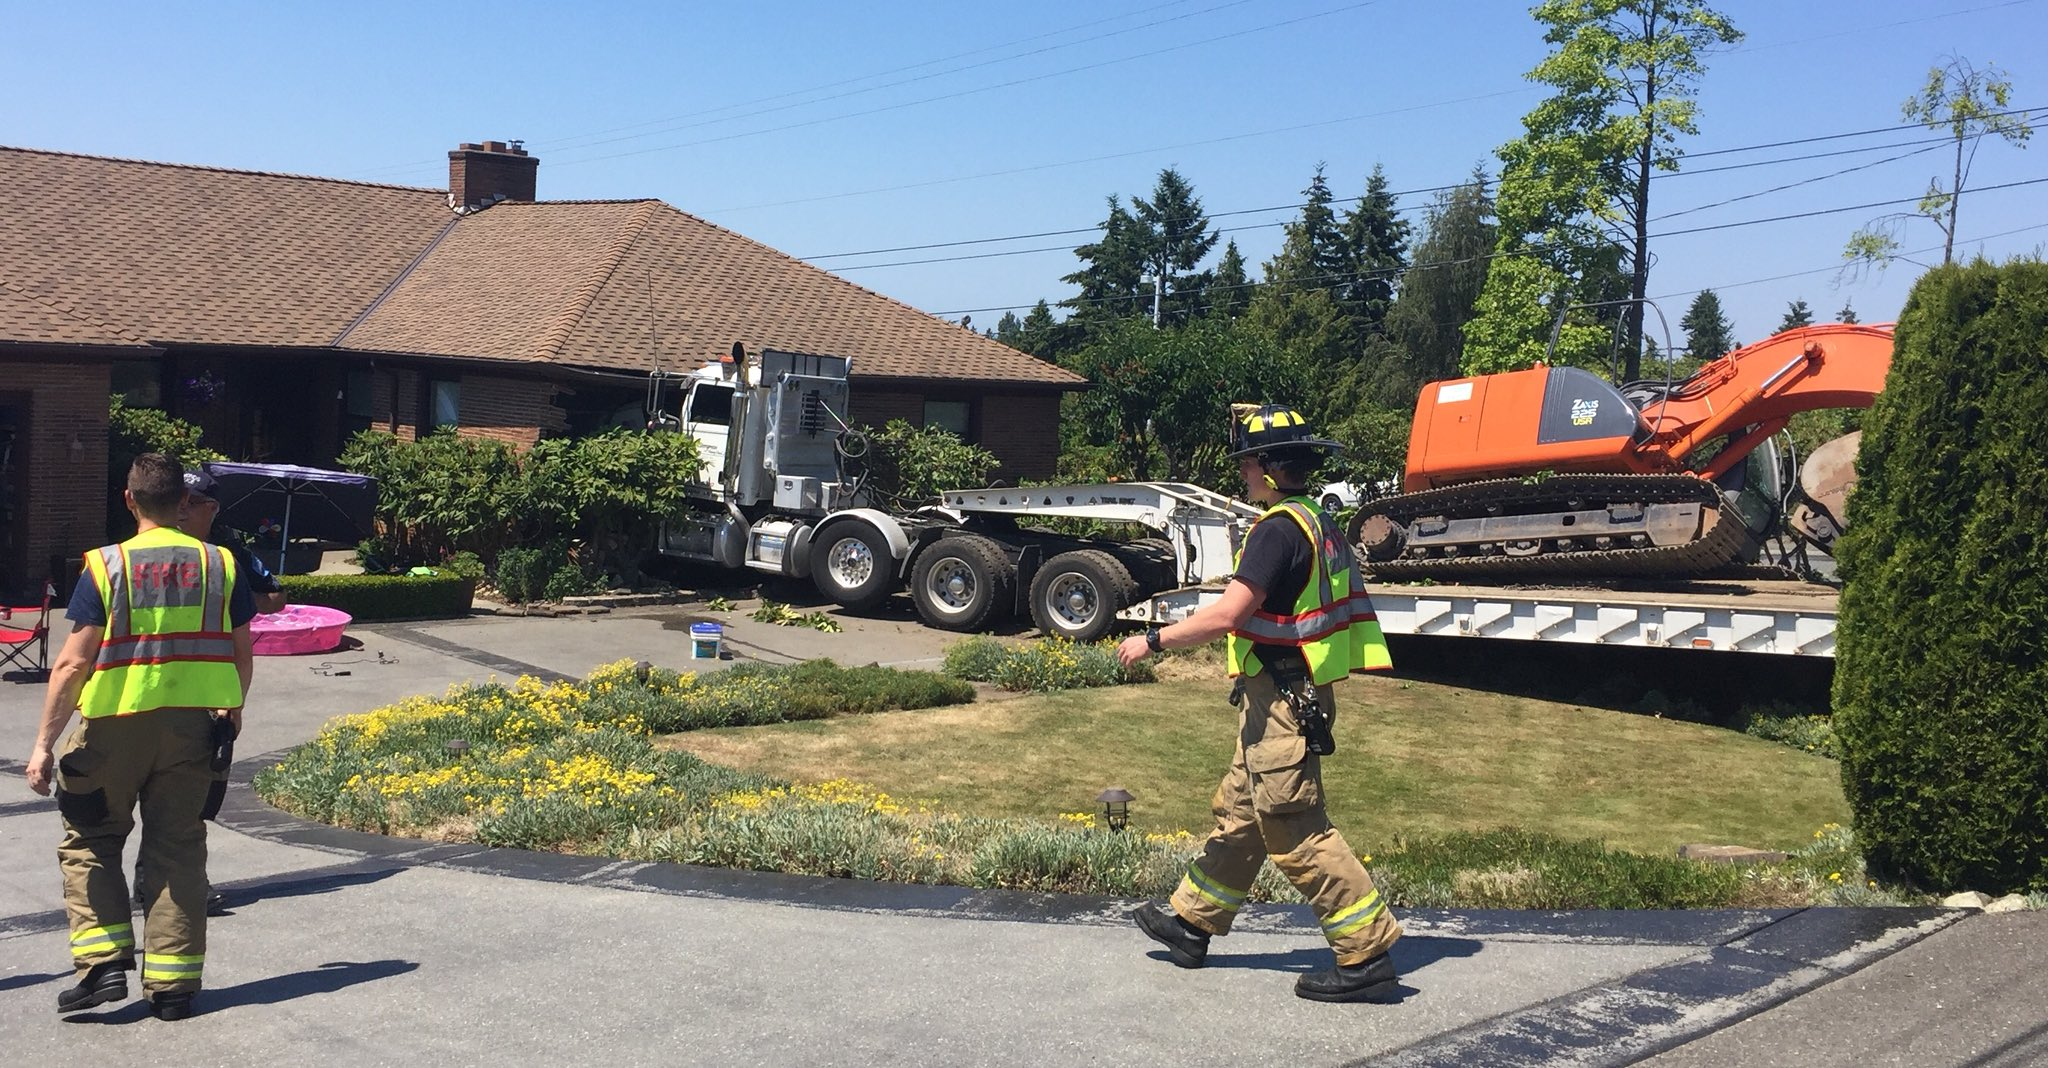 A semi truck without a driver crashed into a home in Edmonds Monday, June 18, 2018. (Photo: South Snohomish County Fire)